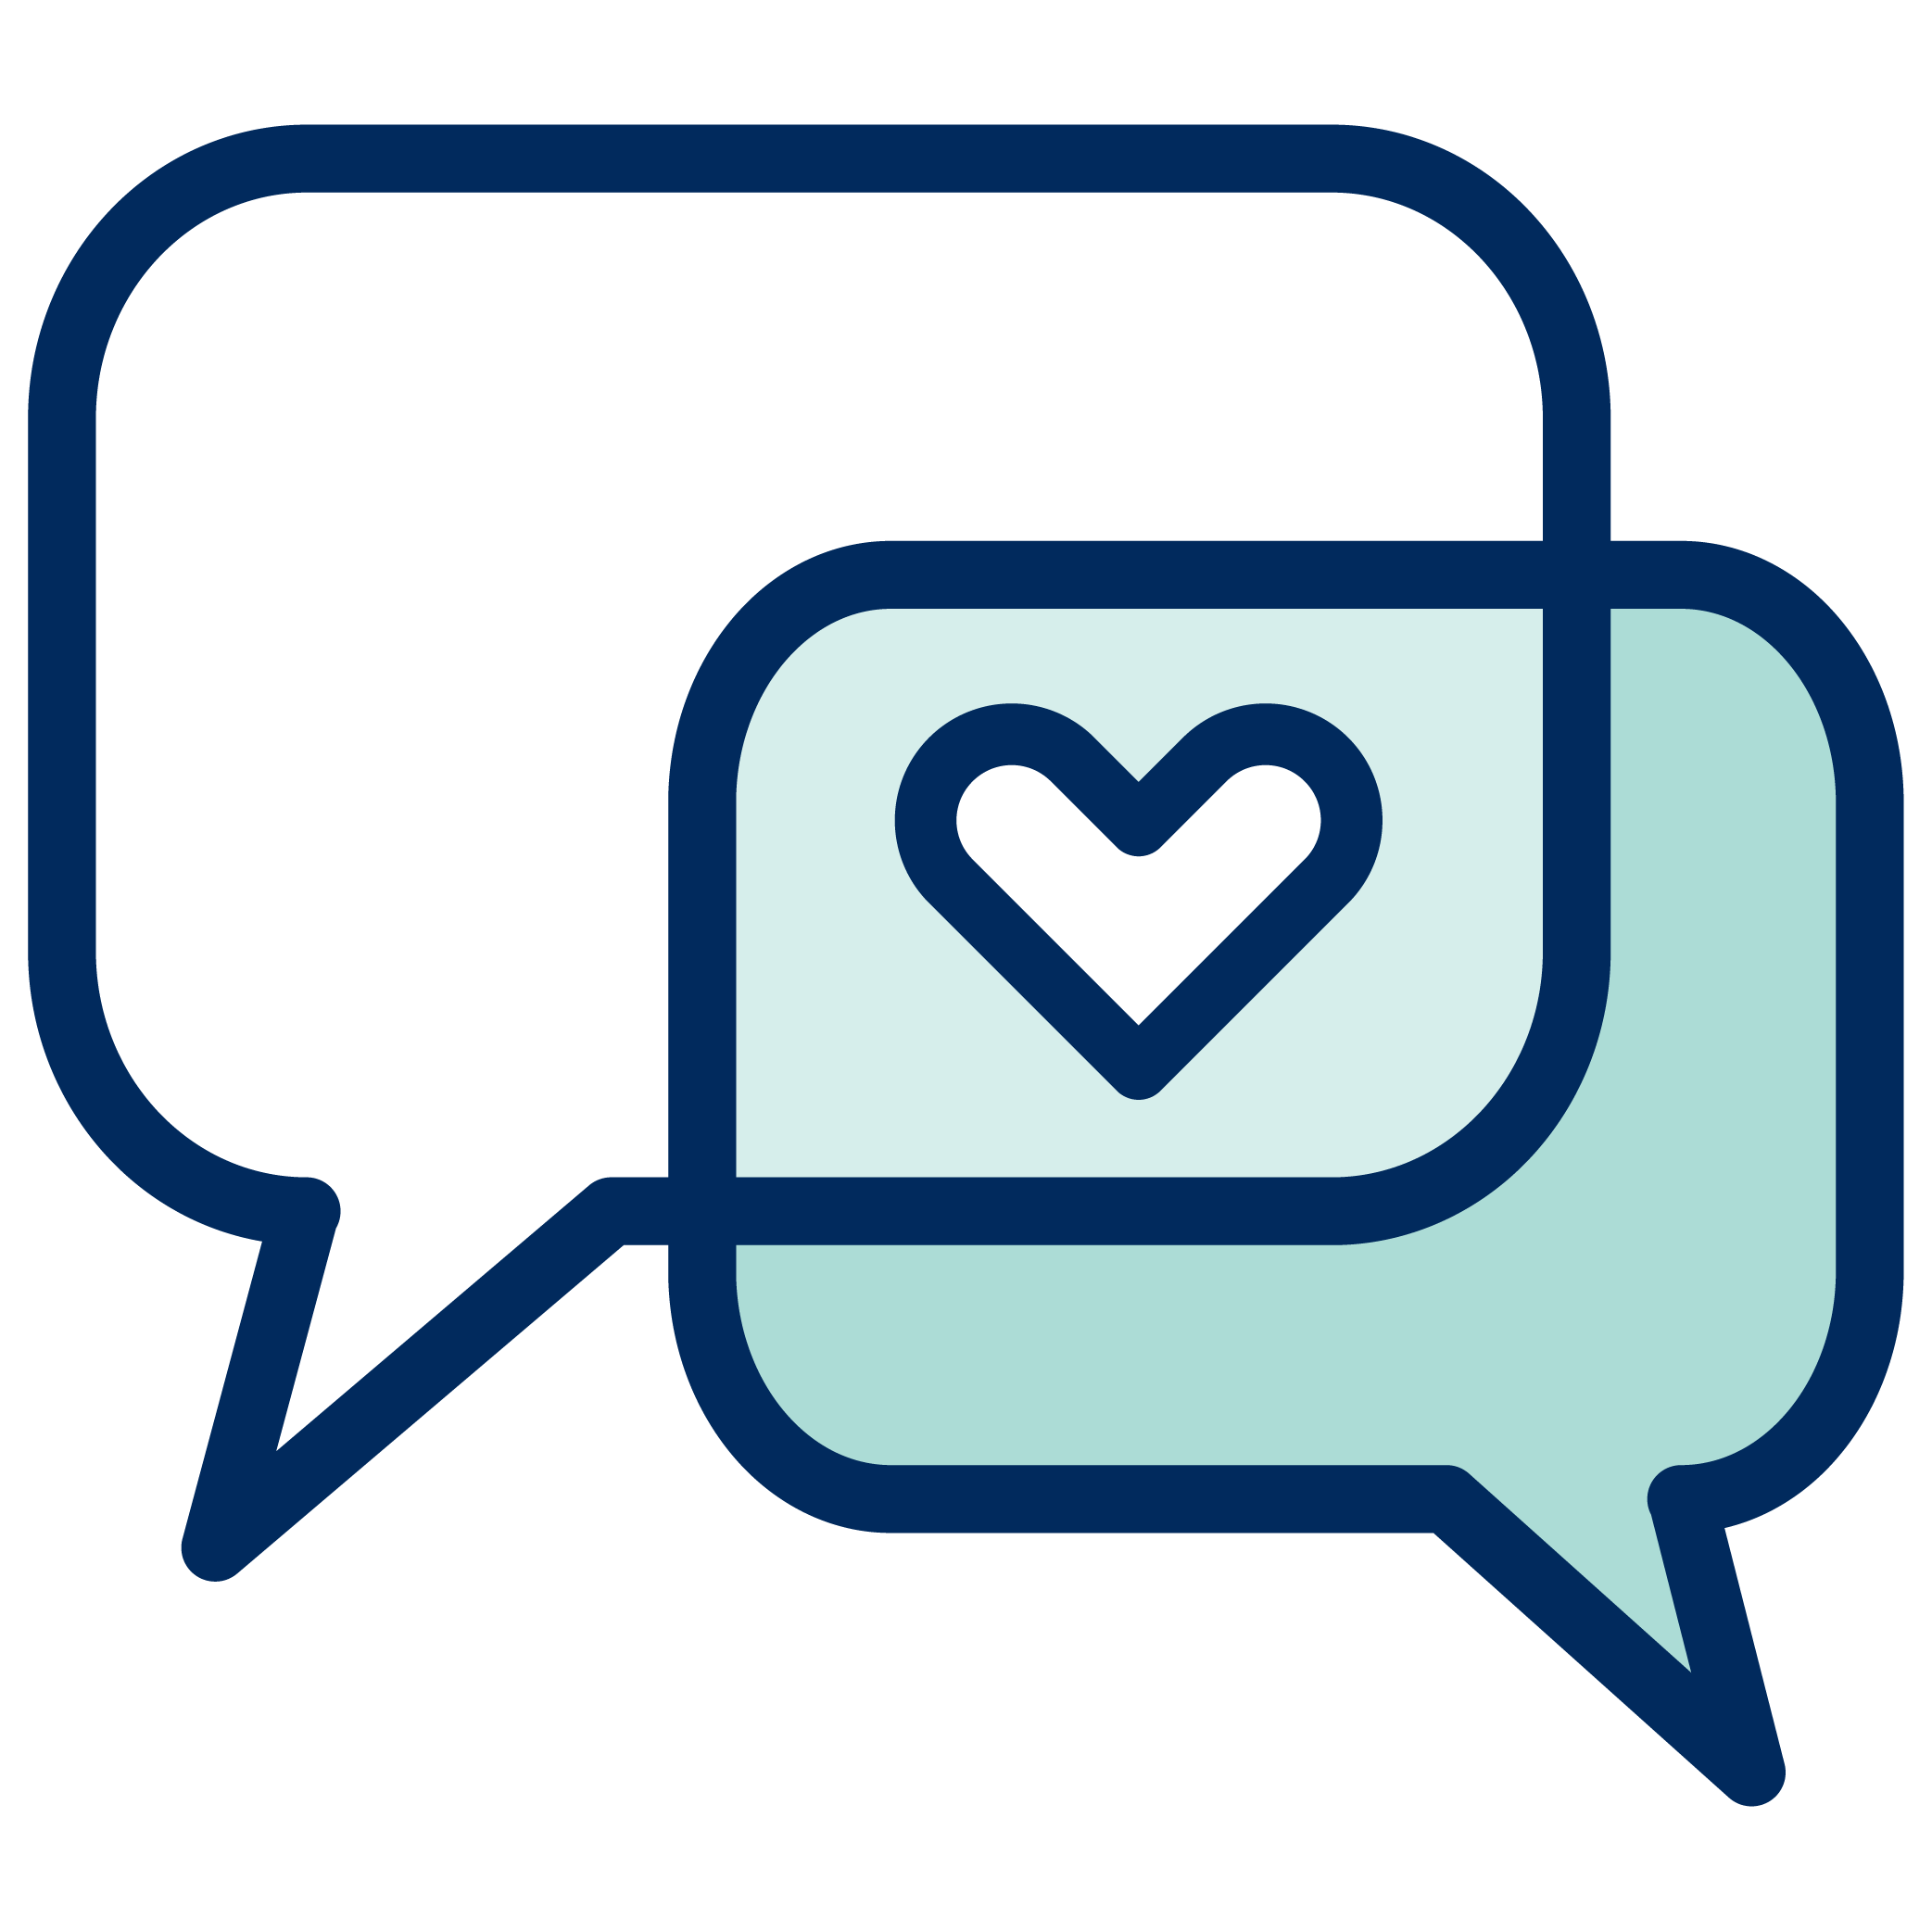 Two speech bubbles overlapped with a heart in the centre.